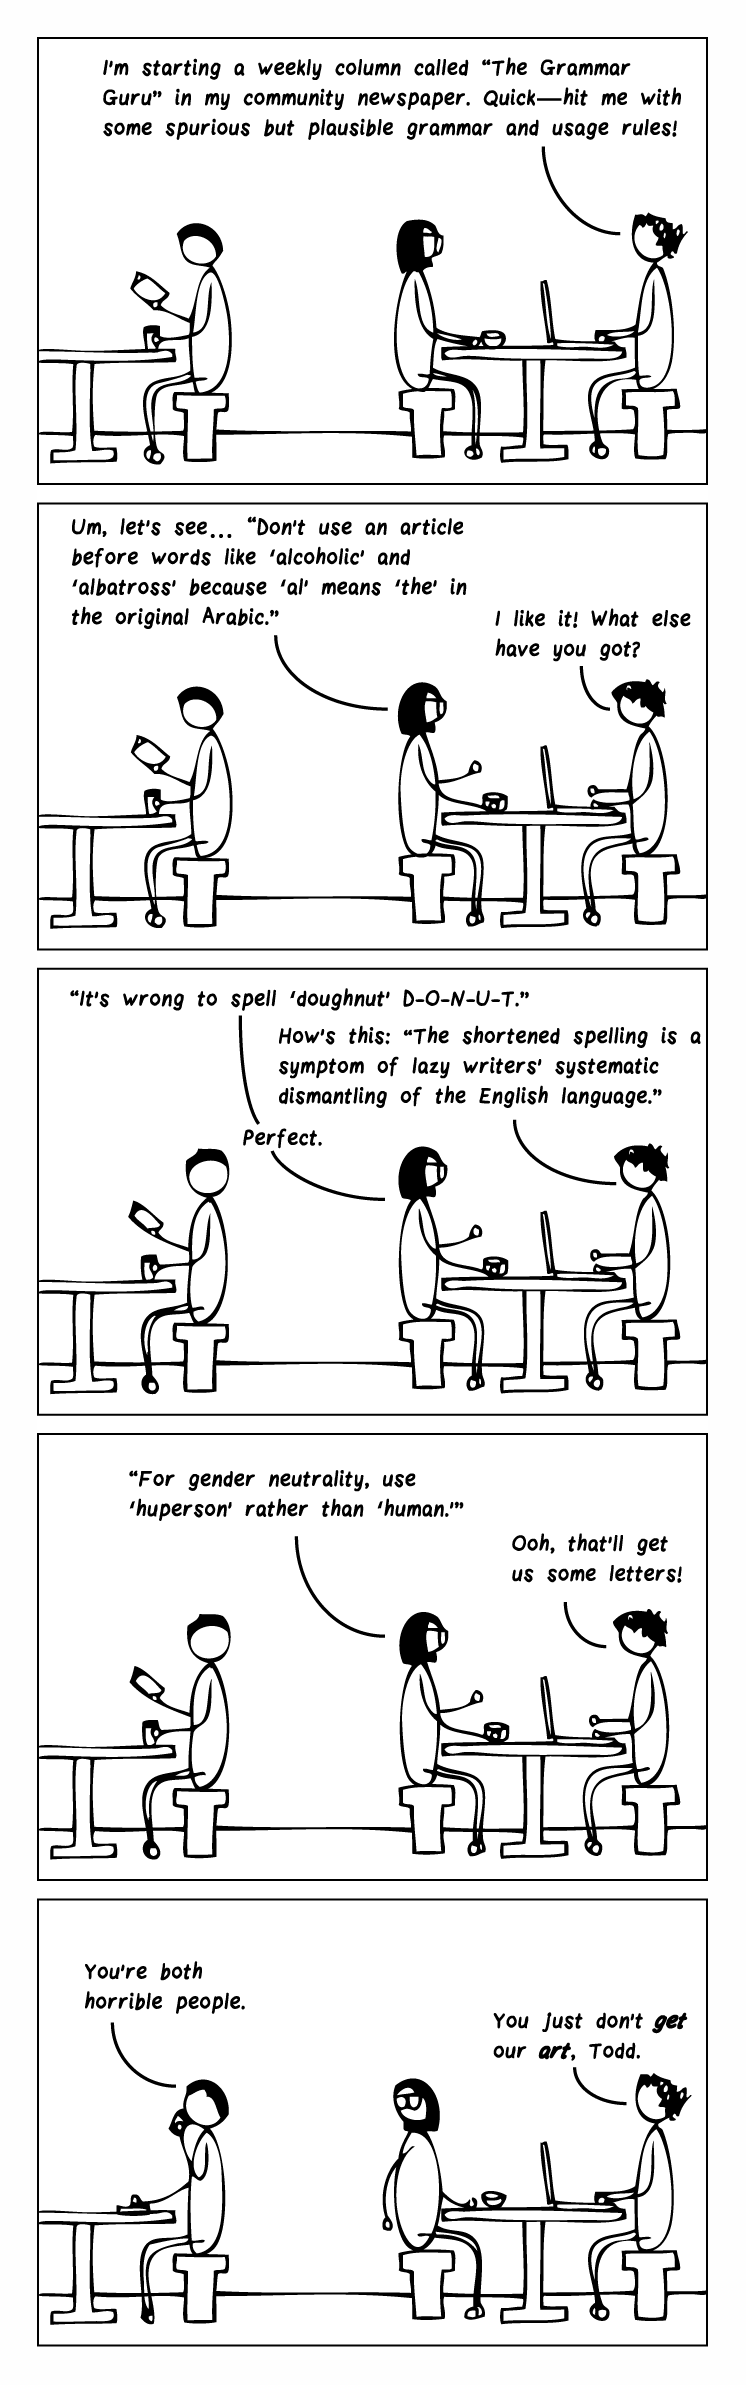 """Five-frame cartoon. Frame 1: Two editors are sitting at a table in a café. There's a man reading at the next table. One editor has a laptop and says, """"I'm starting a weekly column called """"The Grammar Guru"""" in my community newspaper. Quick—hit me with some spurious but plausible grammar and usage rules!"""" Frame 2: Bespectacled editor says, """"Um, let's see… """"Don't use an article before words like 'alcoholic' and 'albatross' because 'al' means 'the' in the original Arabic."""" Curly-haired editor says, """"I like it! What else have you got?"""" Frame 3: Bespectacled editor says, """"It is wrong to spell 'doughnut' D-O-N-U-T."""" Curly-haired editor says, """"How's this: """"The shortened spelling is a symptom of lazy writers' systematic dismantling of the English language."""" Bespectacled editor says, """"Perfect."""" Frame 4: Bespectacled editor says, """"""""For gender neutrality, use 'huperson' rather than 'human.'"""" Bespectacled editor says, """"Ooh, that'll get us some letters!"""" Final frame: The man at the next table says, """"You're both horrible people."""" Curly-haired editor says, """"You just don't GET our ART, Todd."""""""